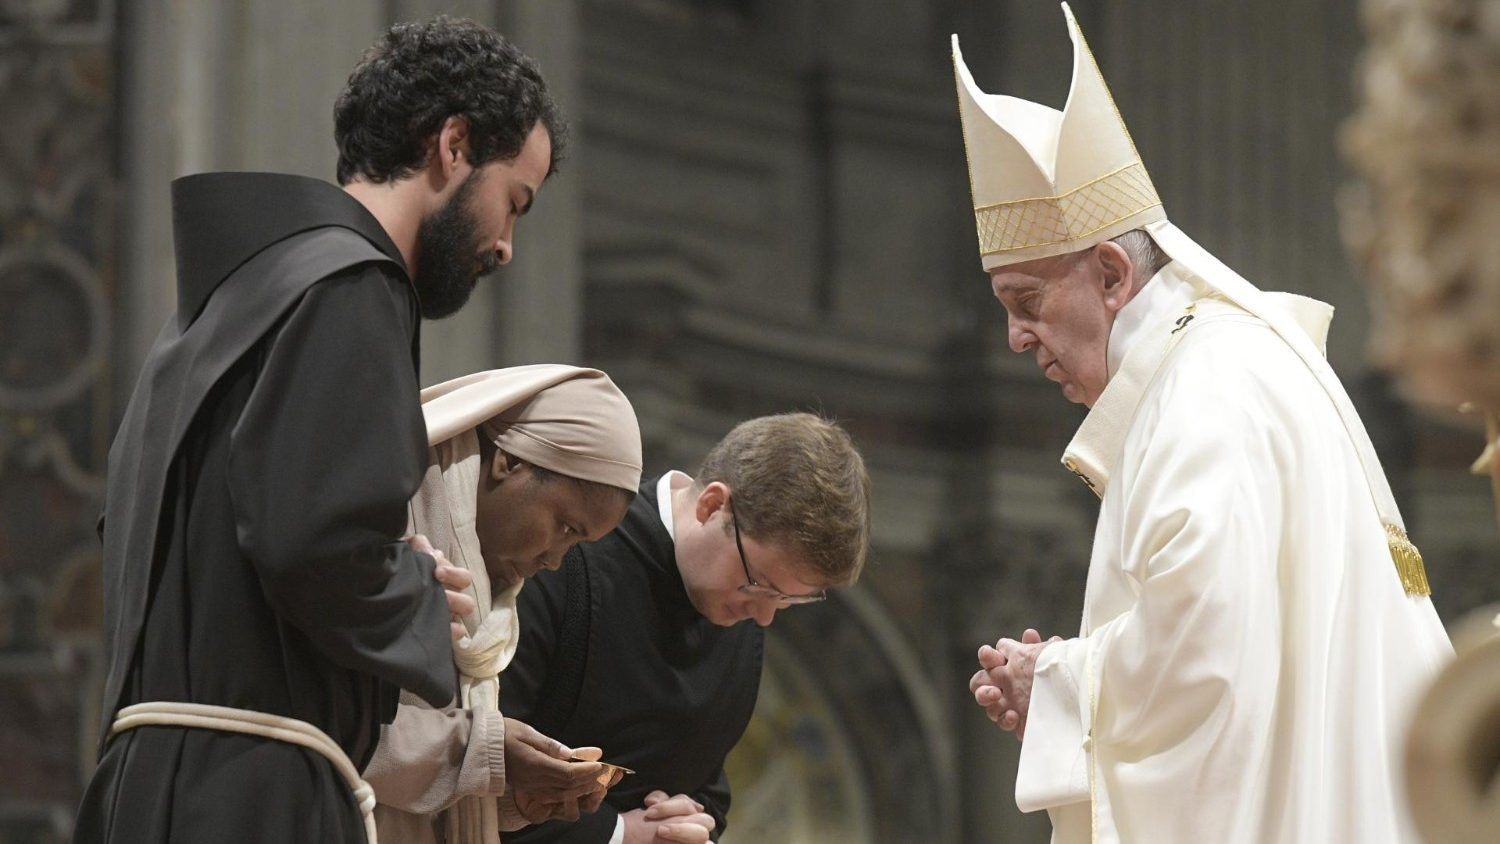 Pope: Religious life means seeing what really matters - Vatican News